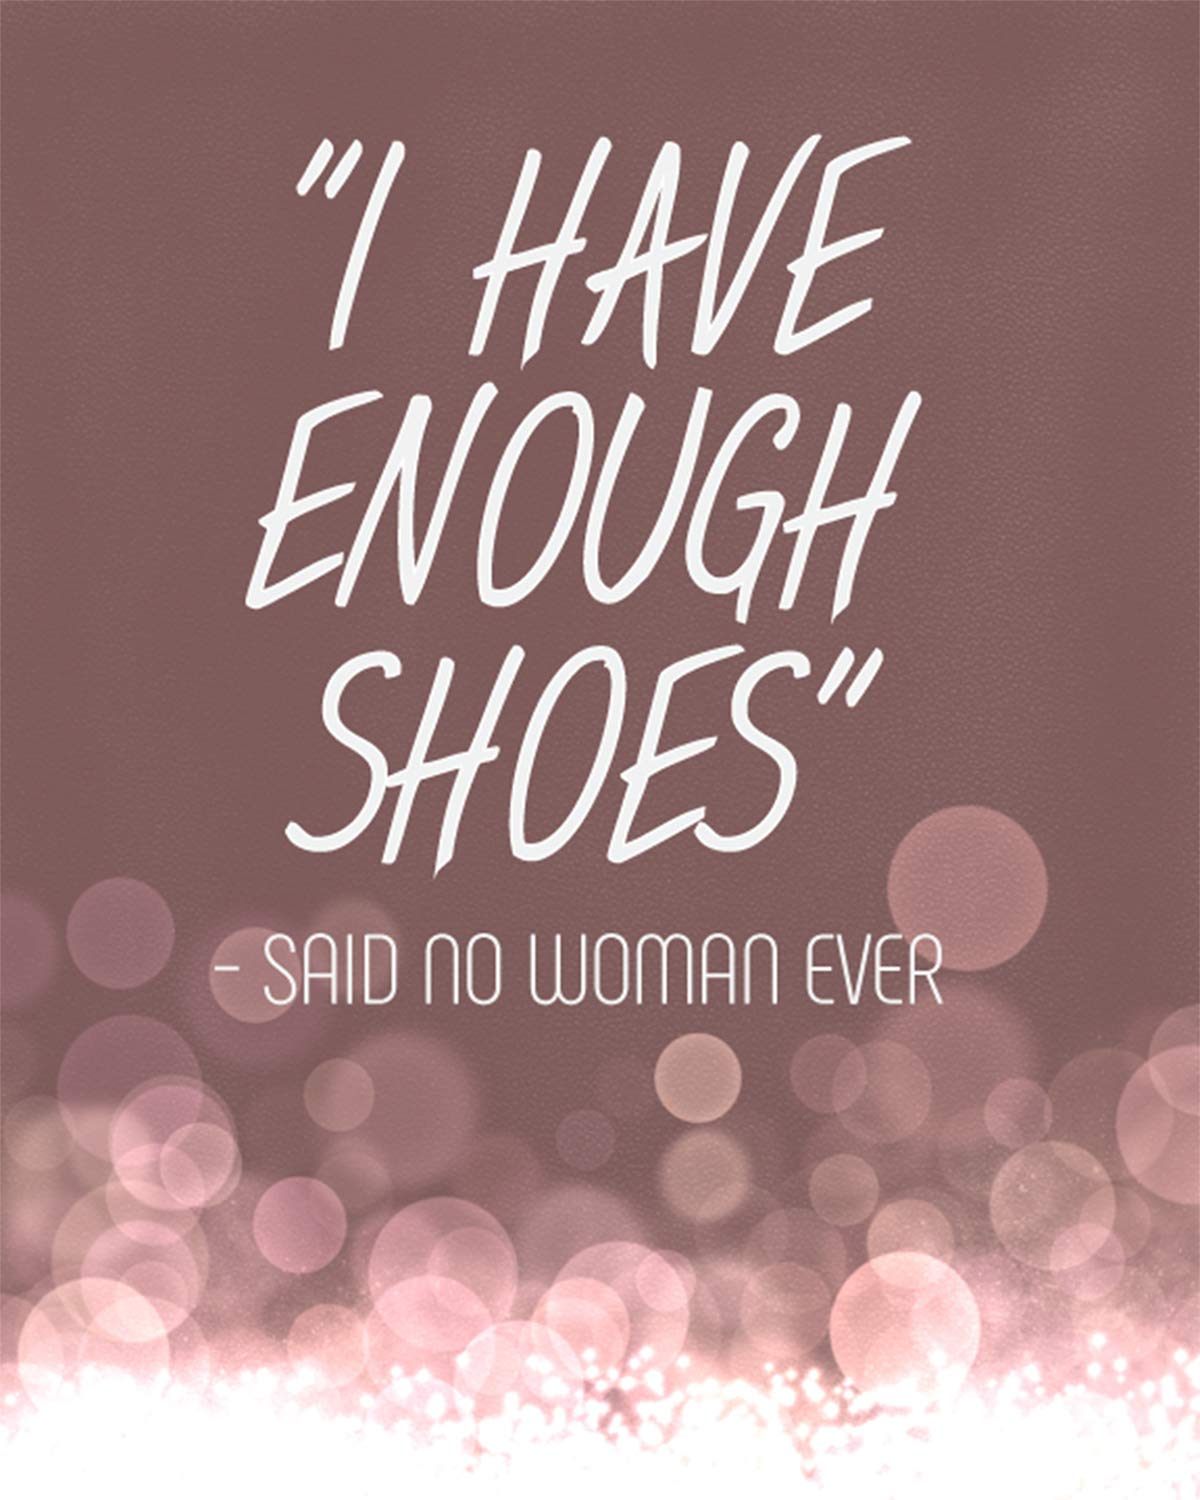 I Have Enough Shoes Said No Woman Ever Wall Decor Art Print On A Light Mauve Background 8x10 Unframed Shoe Themed Print Great Gift For Relatives And Friends Handmade